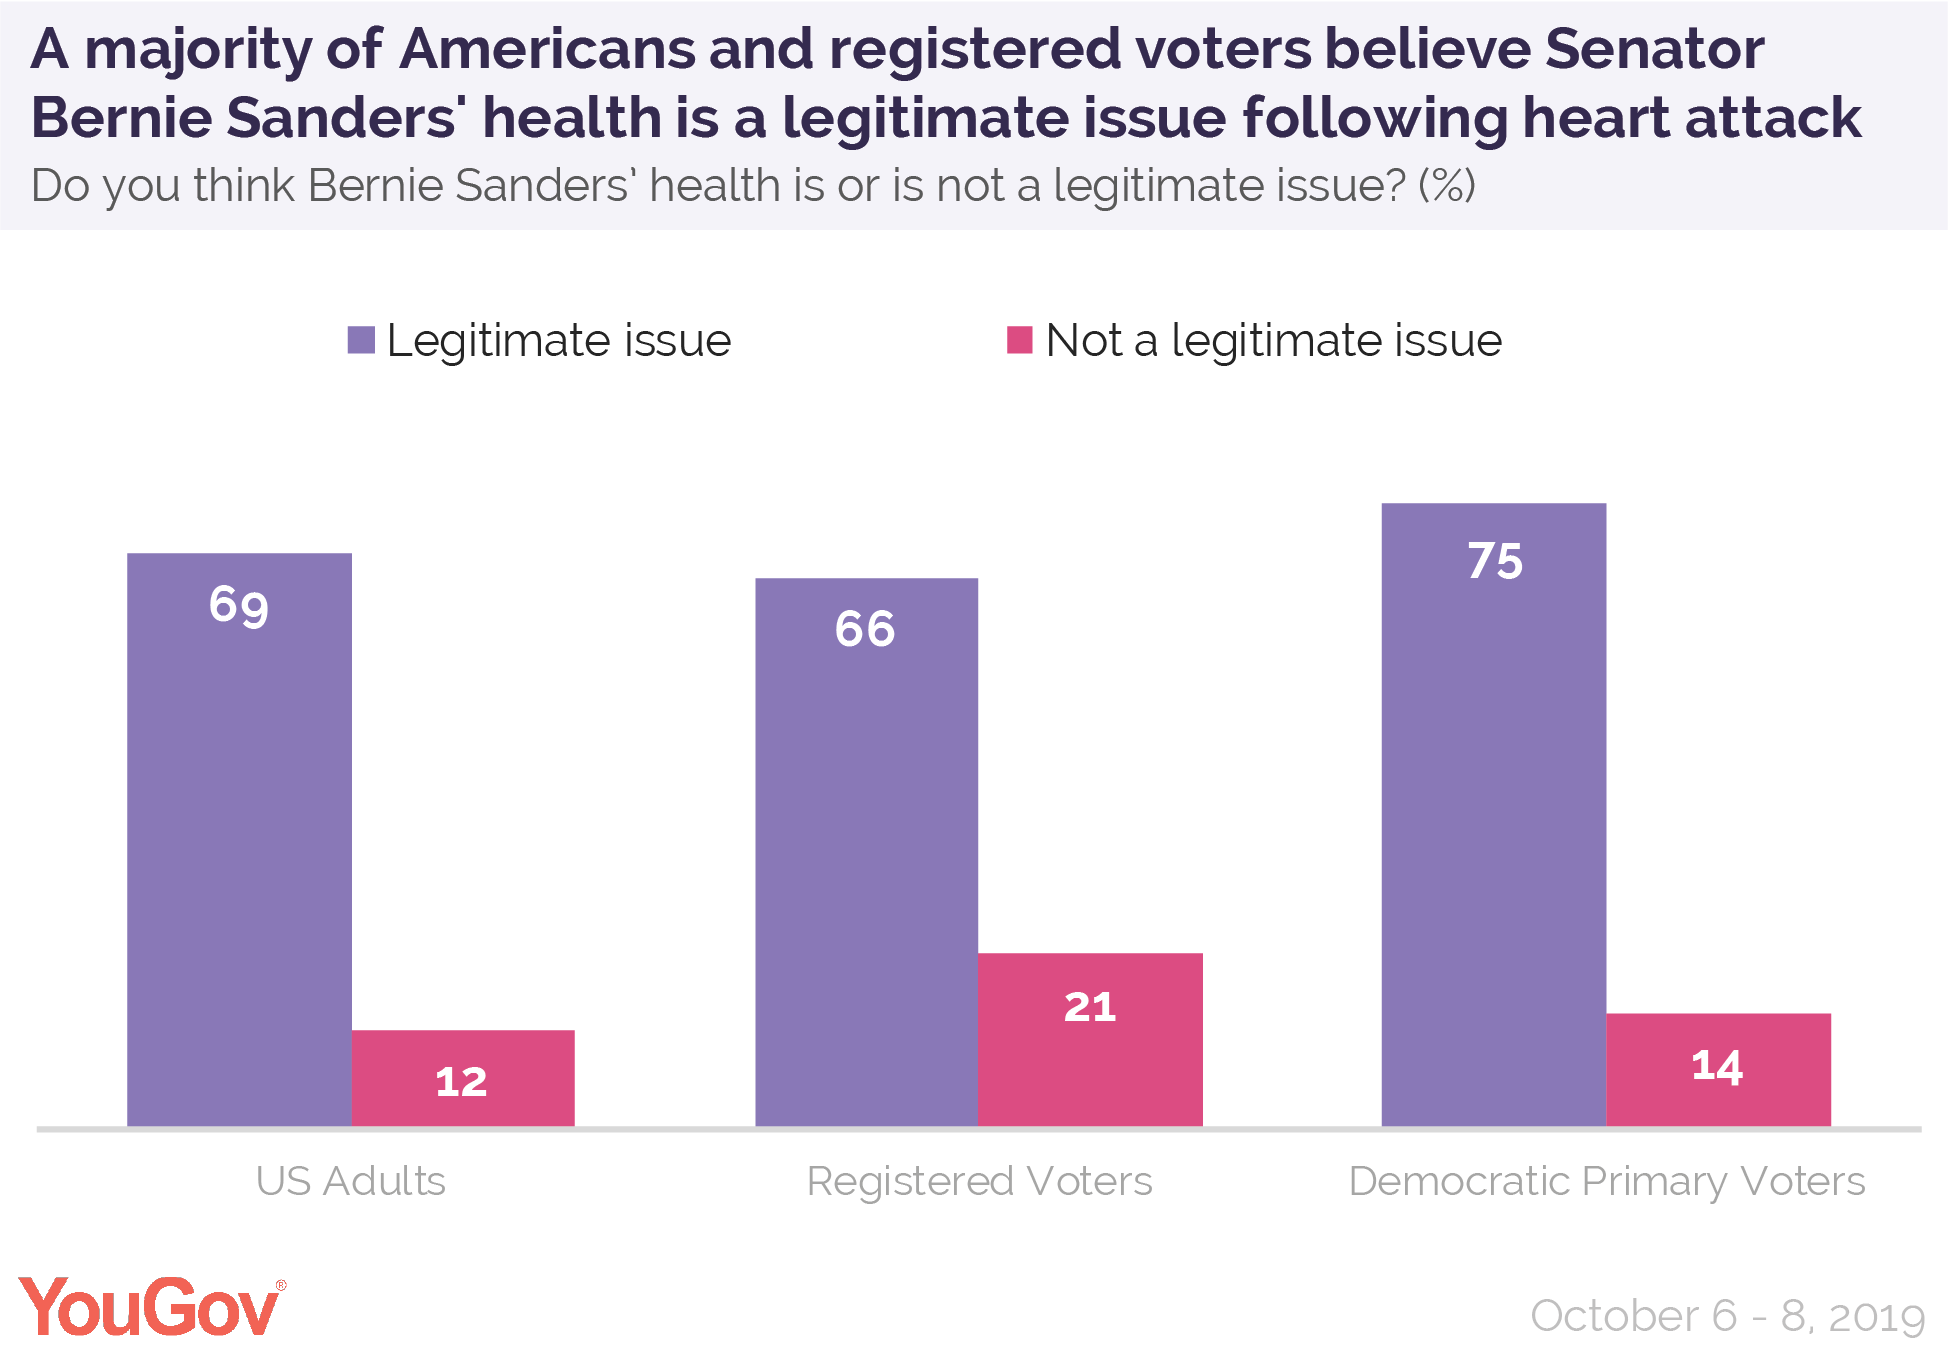 A majority of Americans and registered voters believe Senator Bernie Sanders' health is a legitimate issue following his heart attack